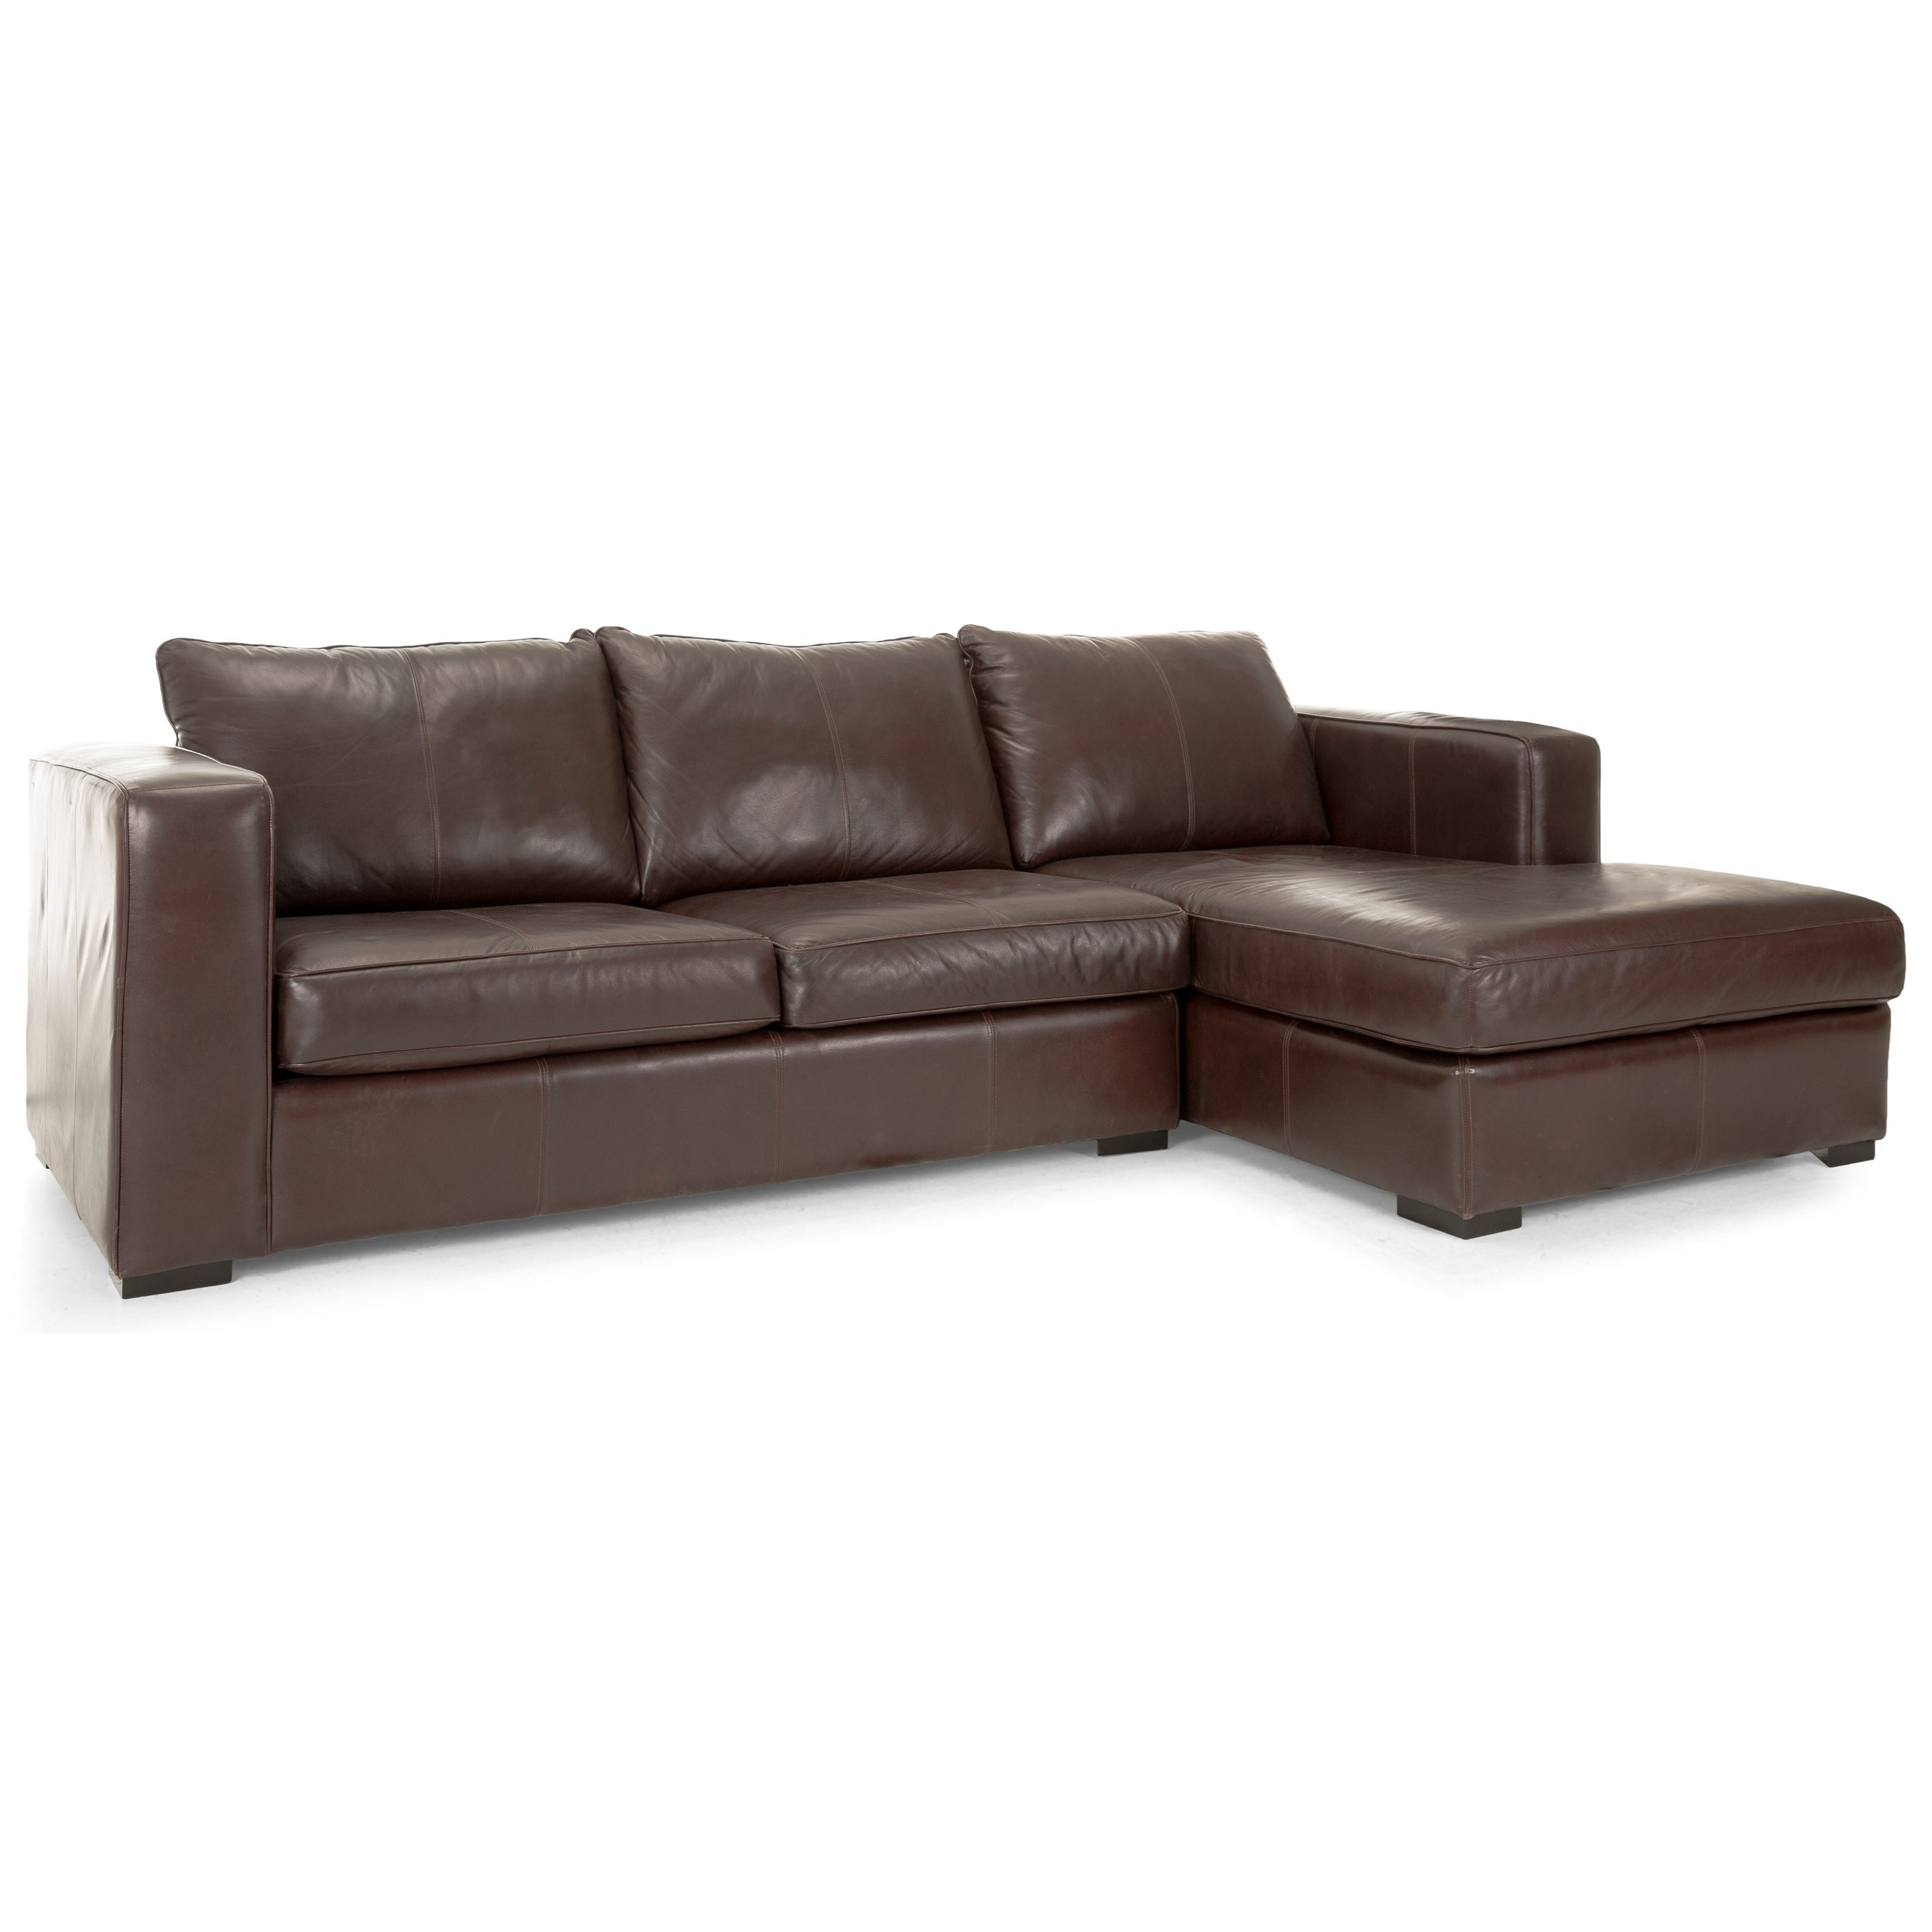 Braden Sofa with Chaise by Taelor Designs at Bennett's Furniture and Mattresses